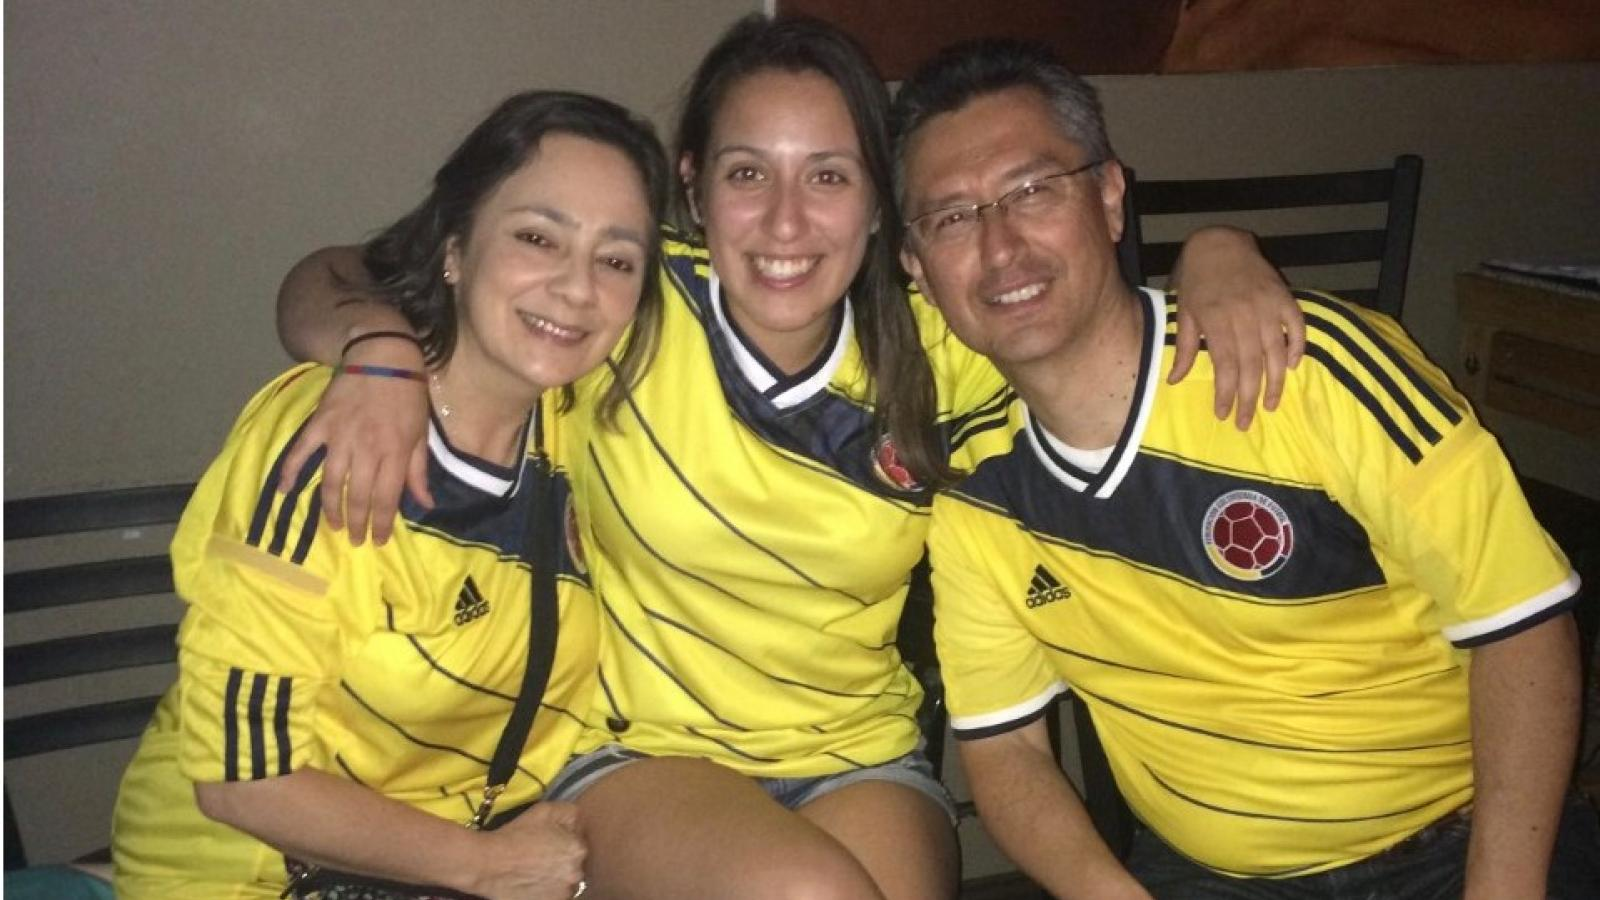 Laura and her parents wearing Colombian jerseys